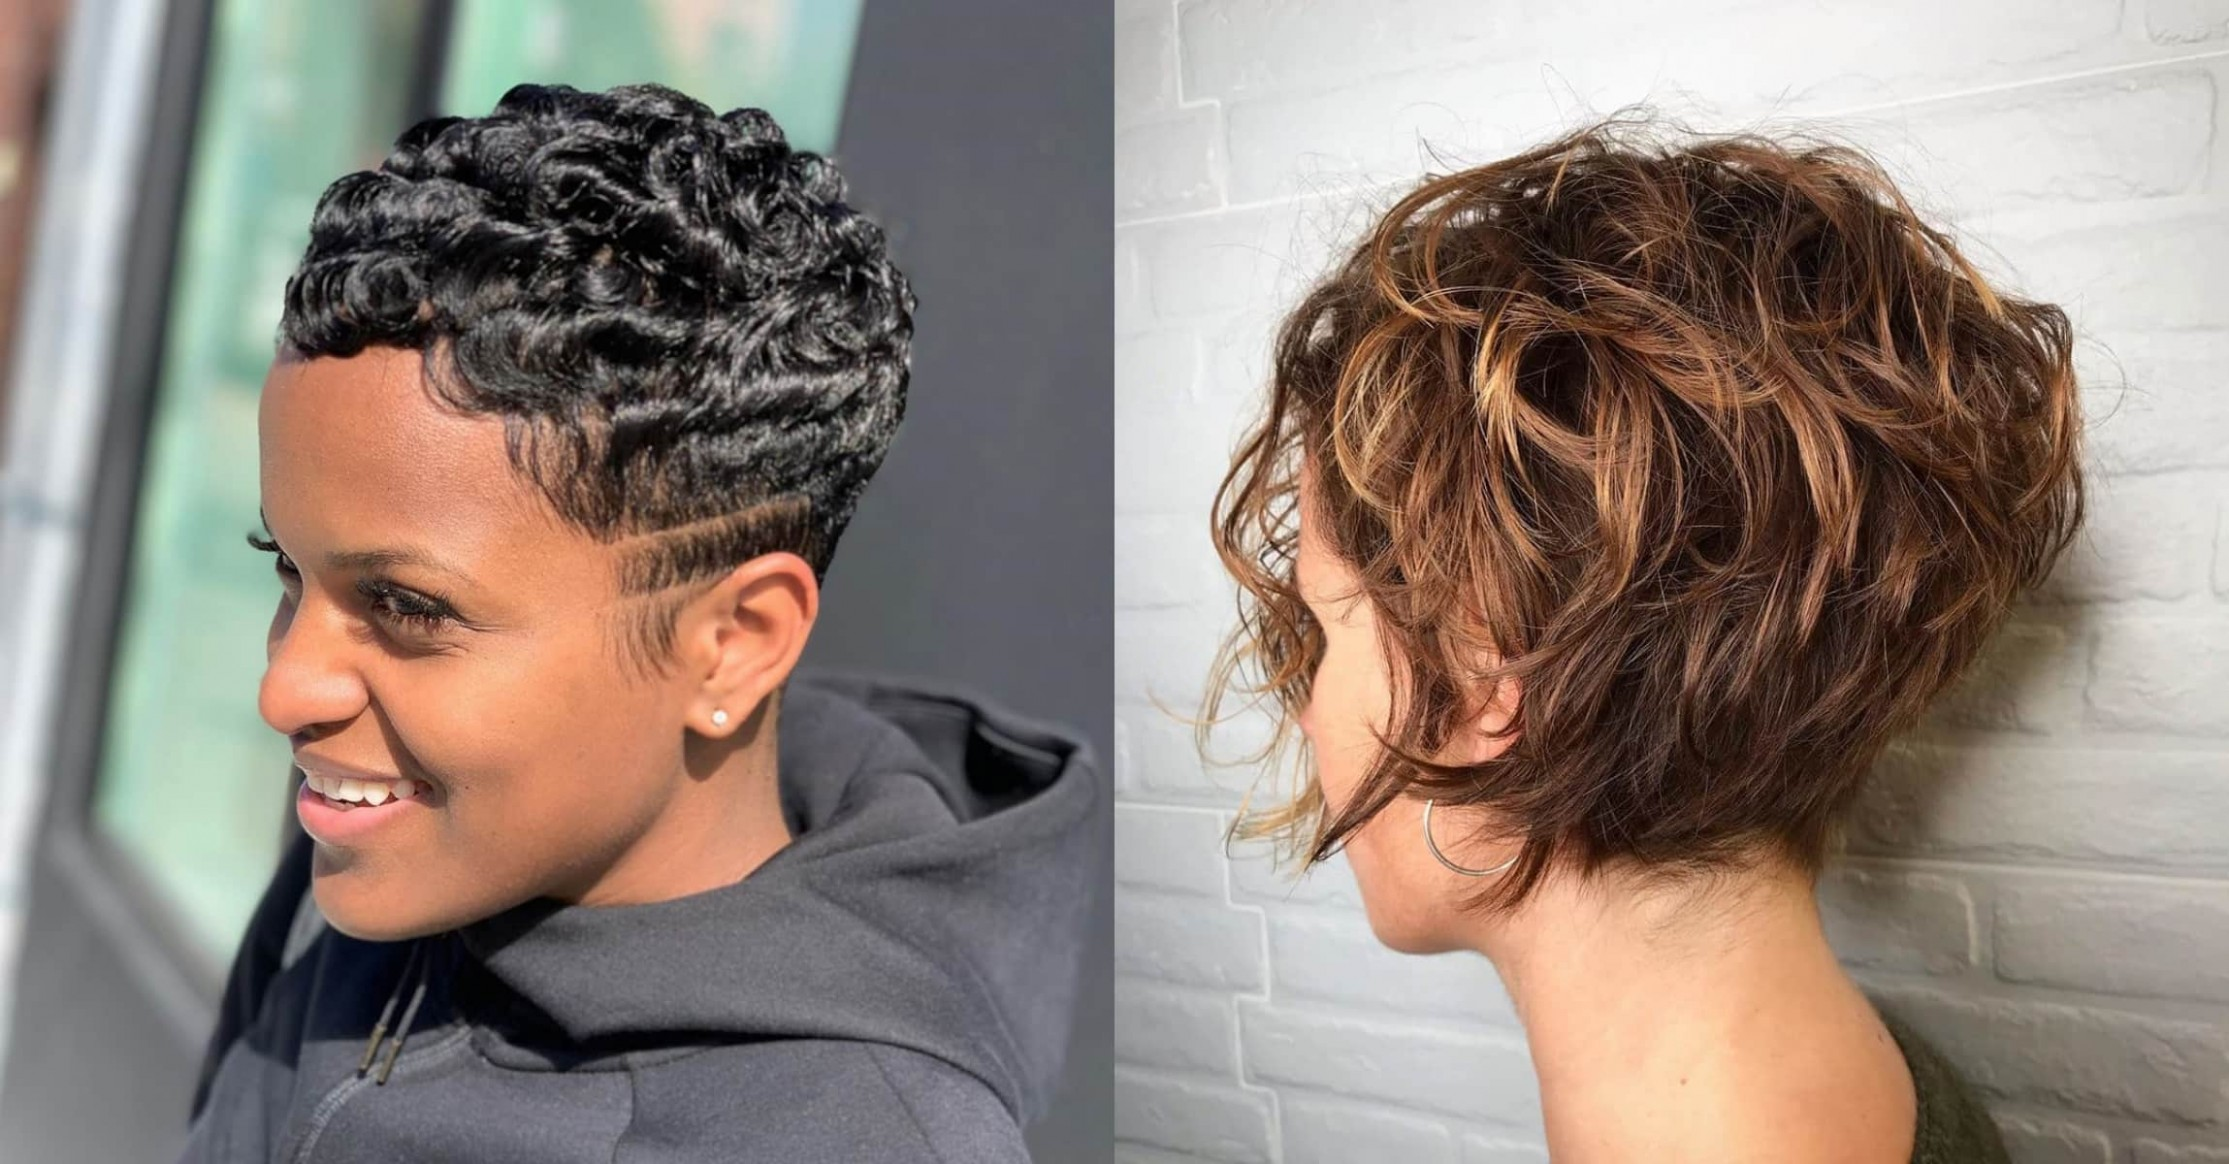 10 Perfect Looks For Short Curly Hair StylesRant Hairstyles To Do With Short Curly Hair